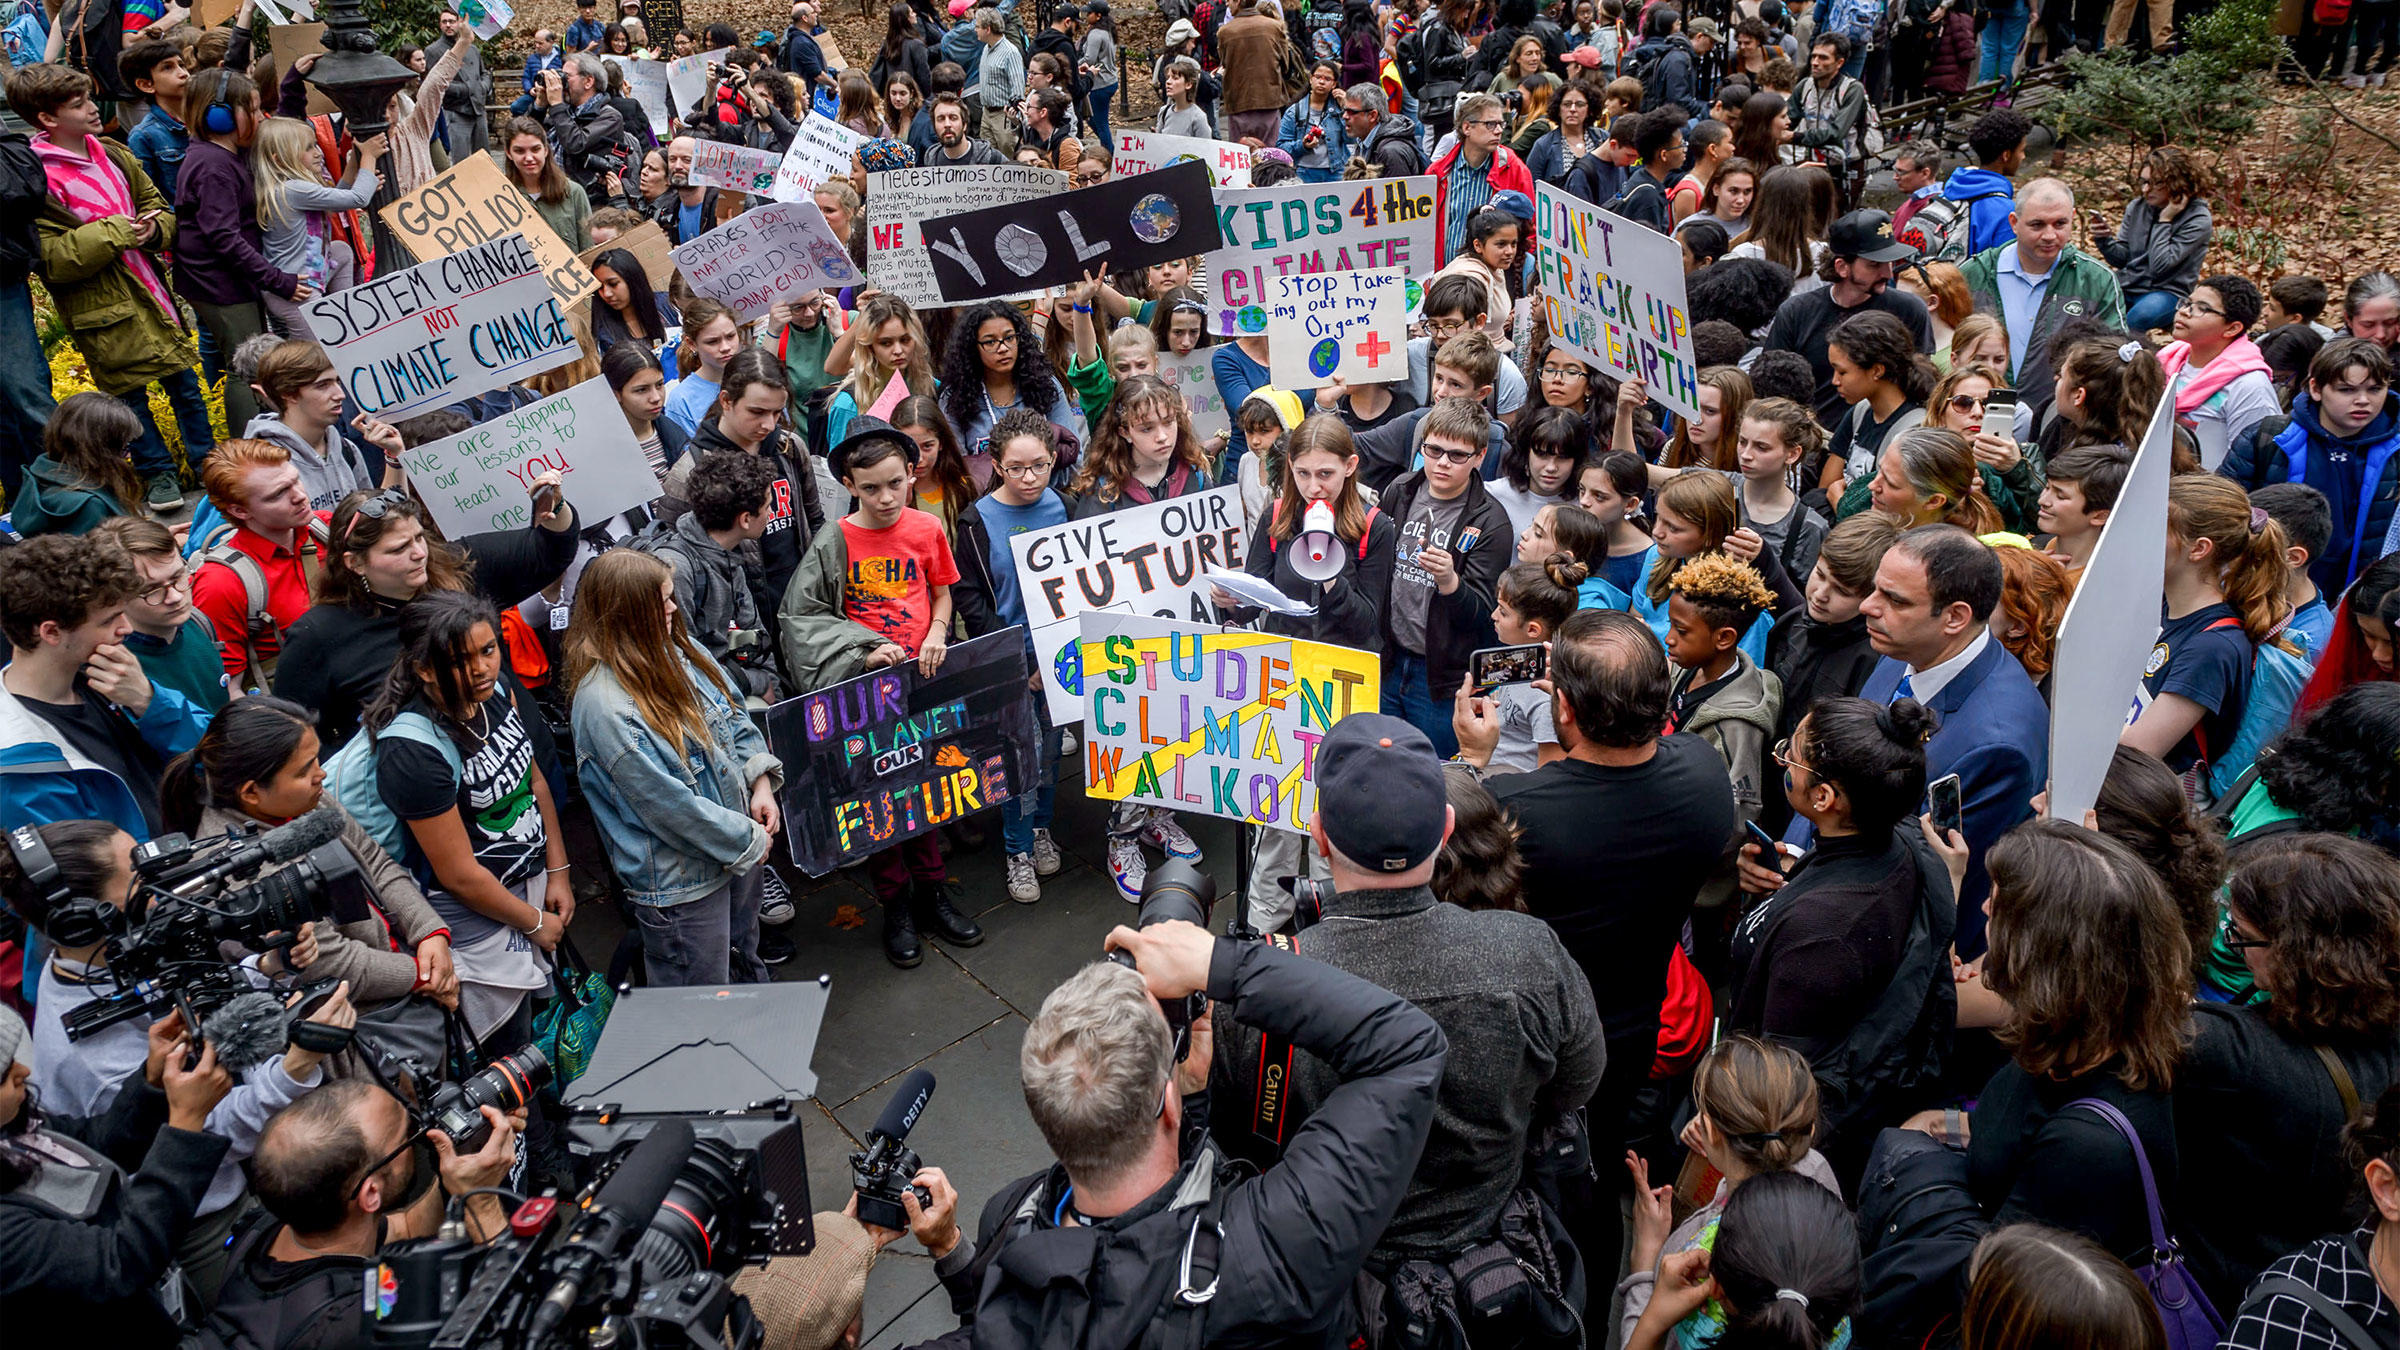 Alexandria Villaseñor, 13, speaks at the climate strike in City Hall Park, New York City, on March 15, 2019. Millions of students across the world walked out of class that day to protest climate change. Erik McGregor/Pacific Press/Alamy